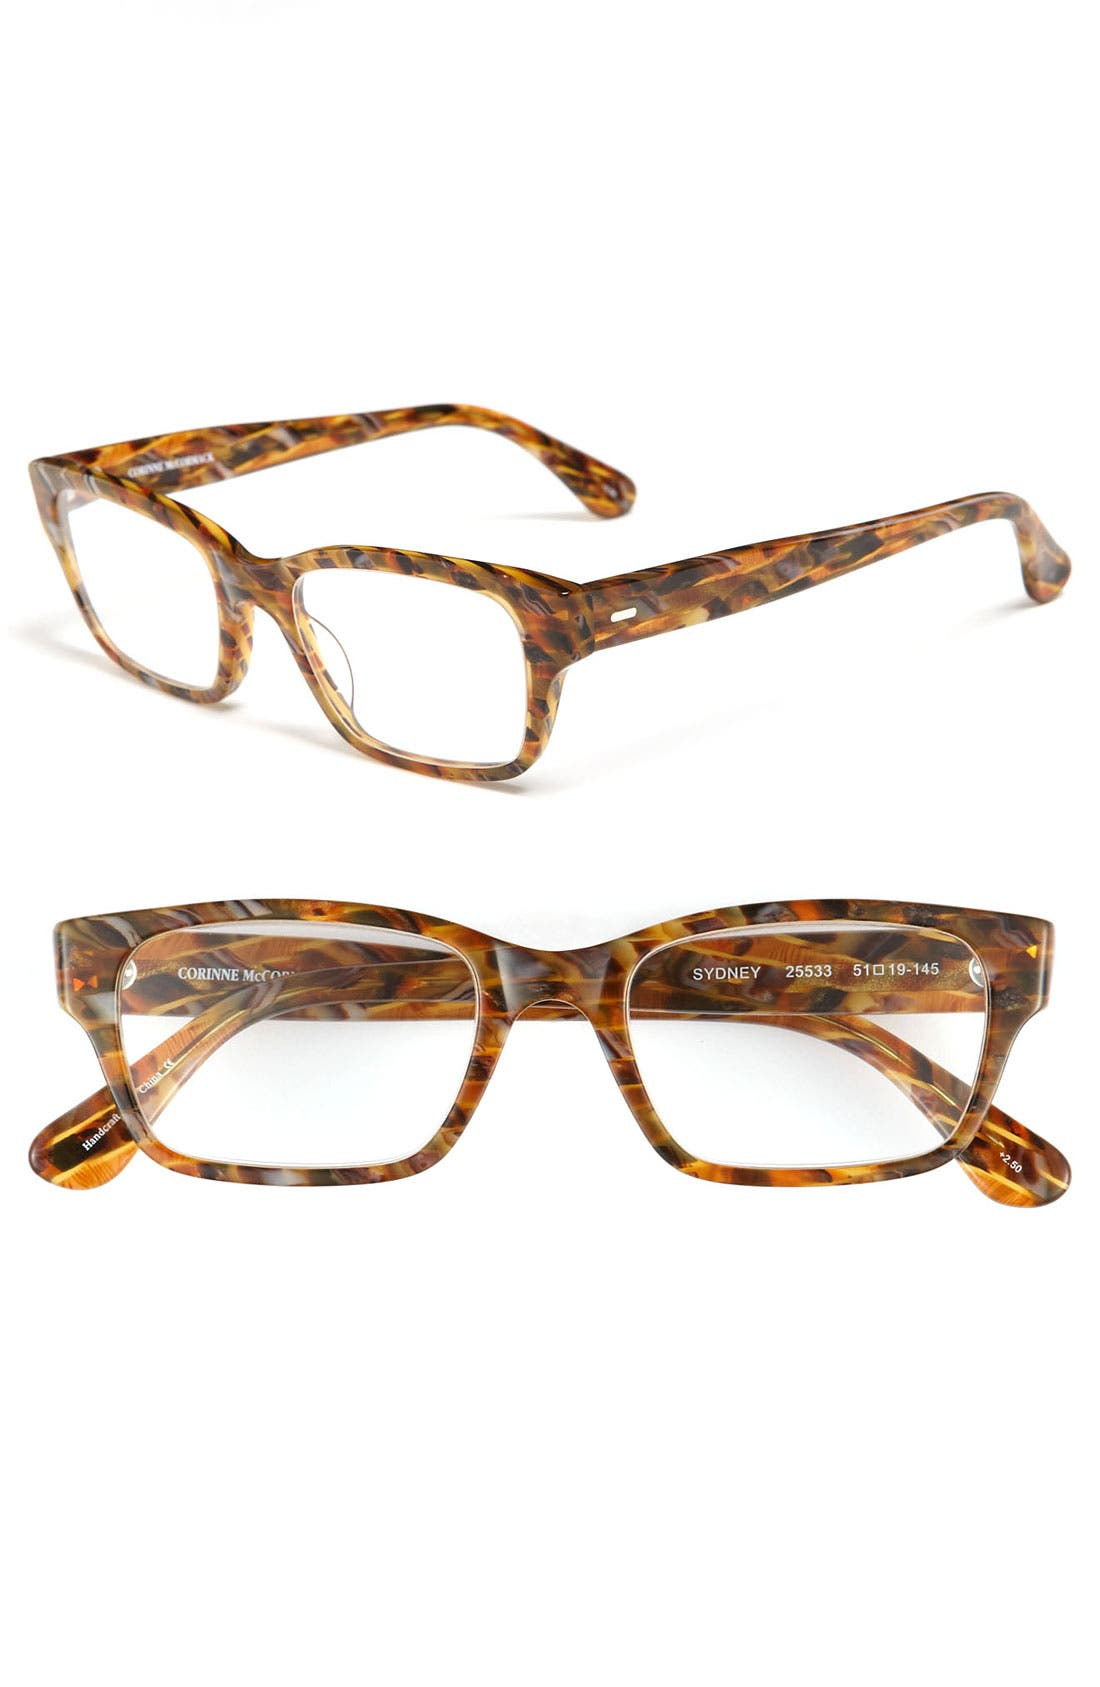 Alternate Image 1 Selected - Corinne McCormack 51mm Reading Glasses (2 for $88)